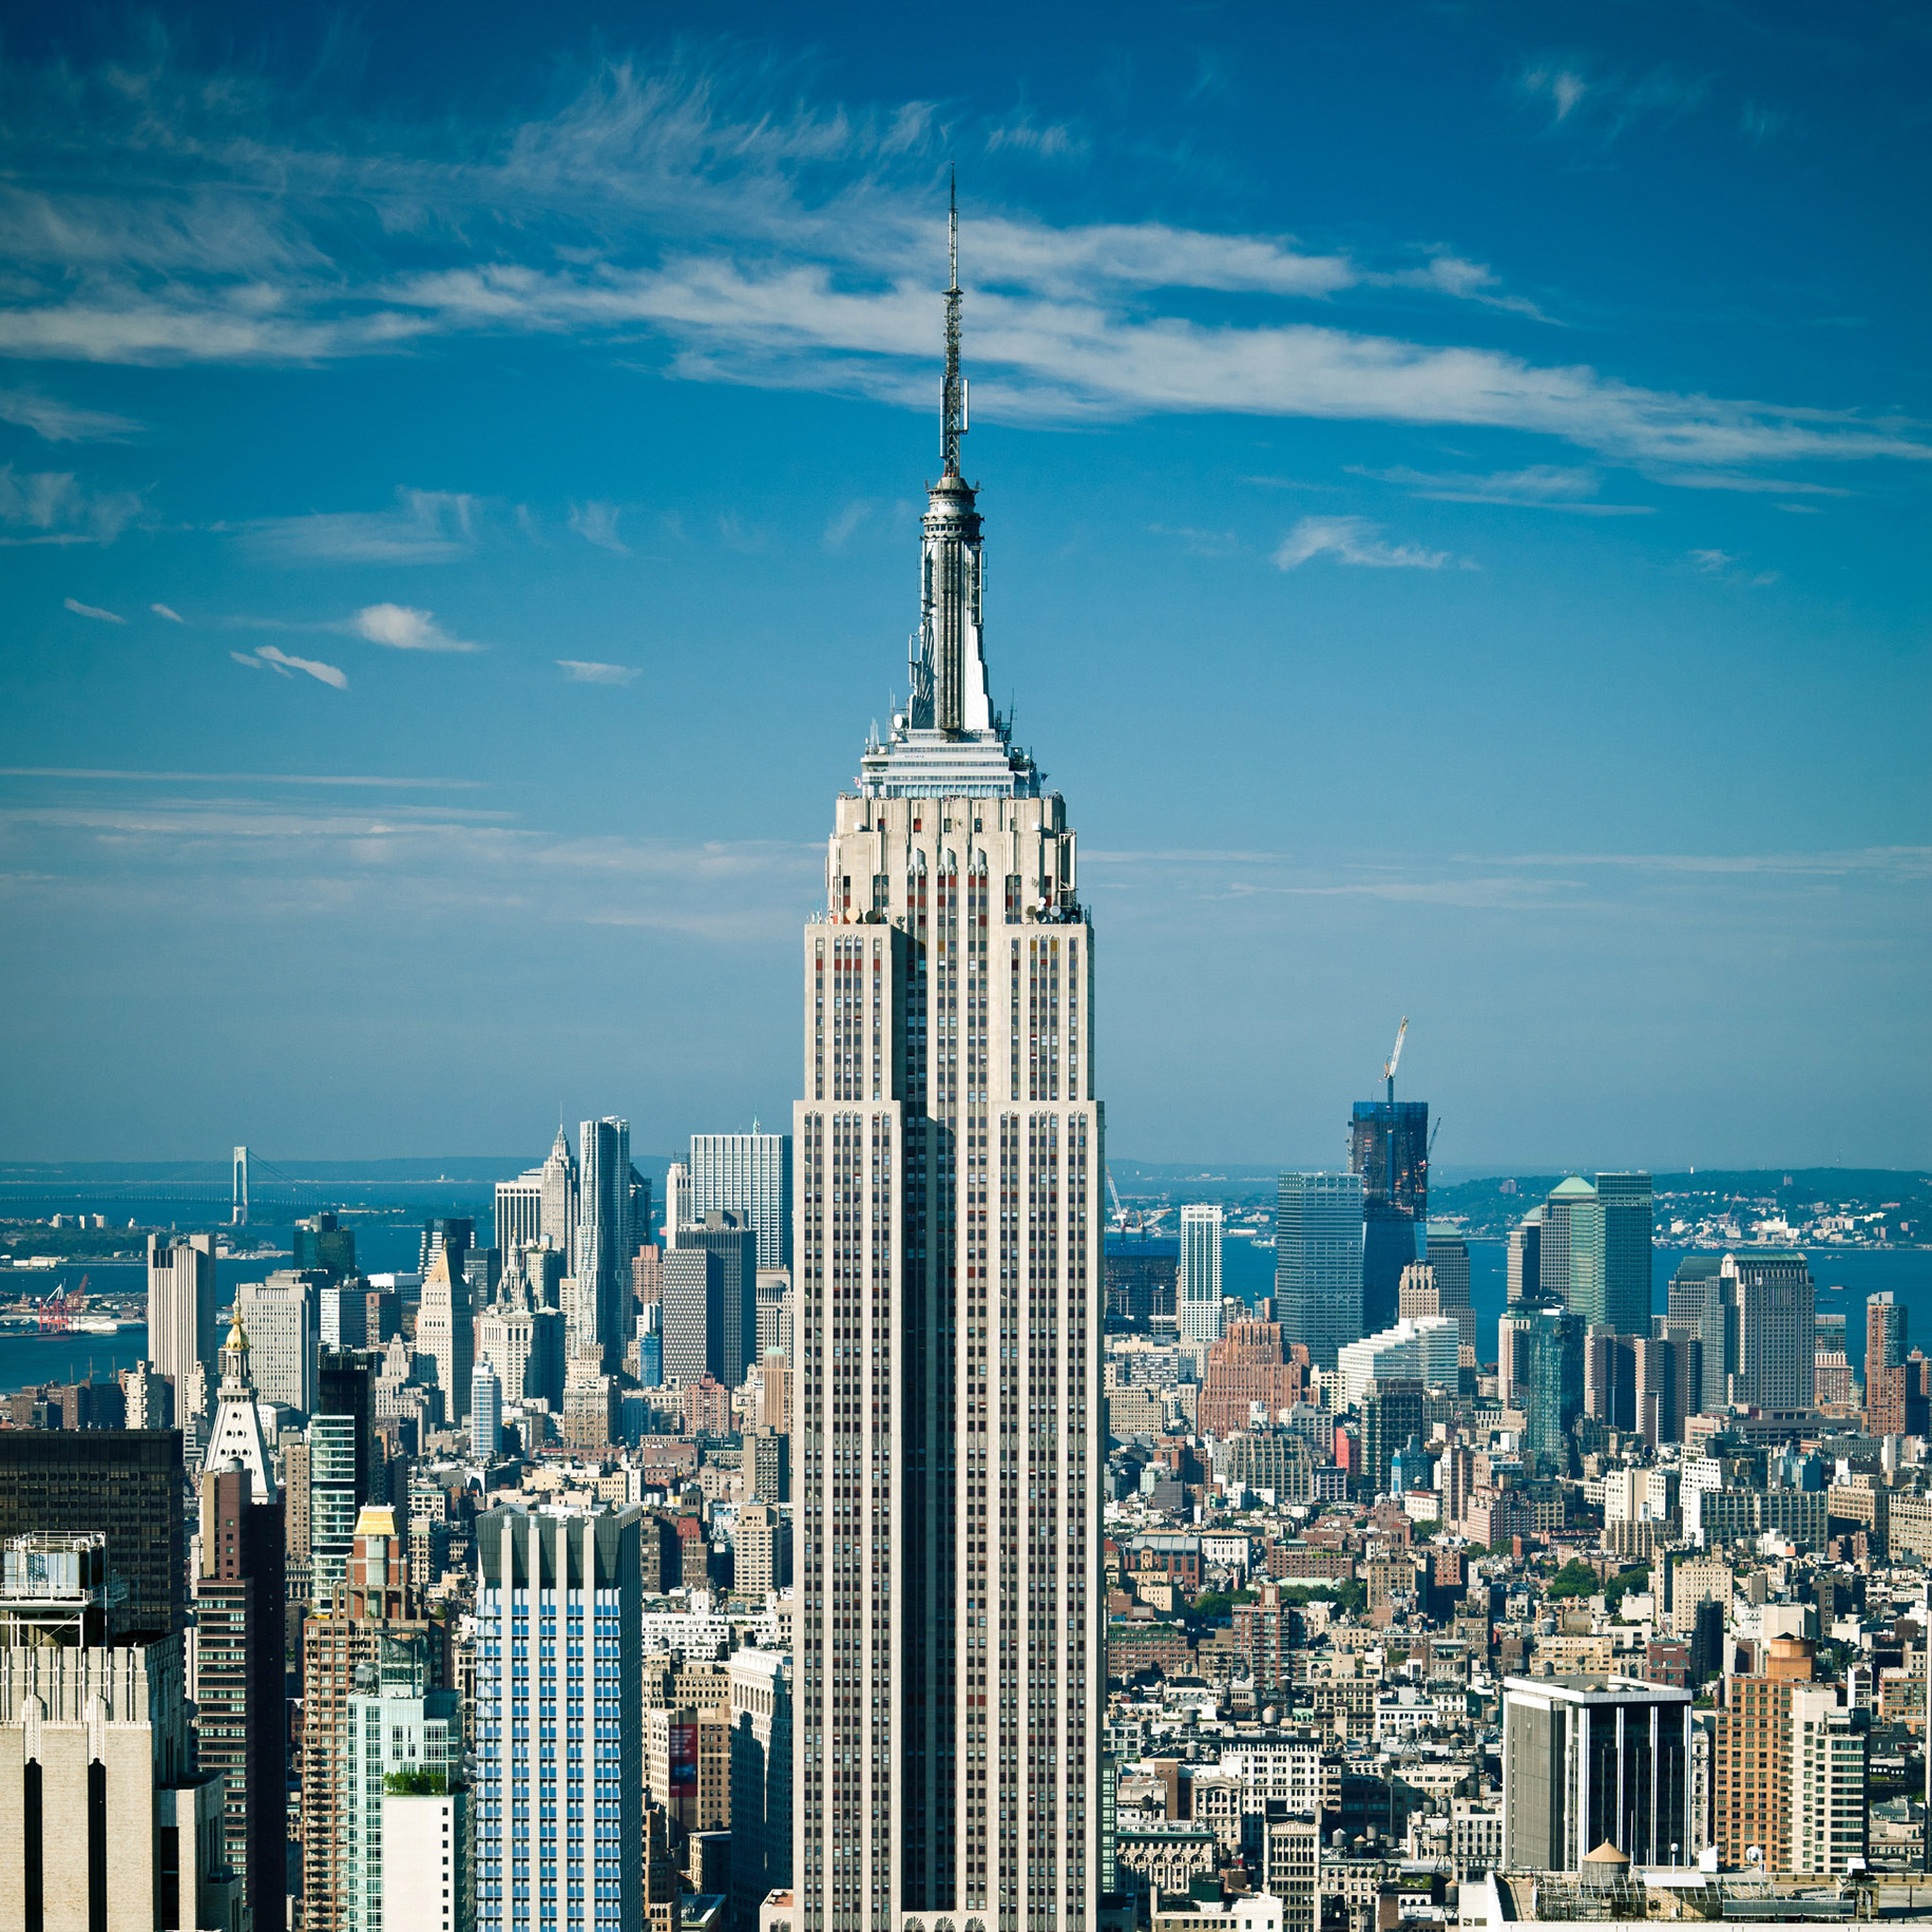 2048x2048 Empire State Building Top View Hd Wallpaper, Background Images